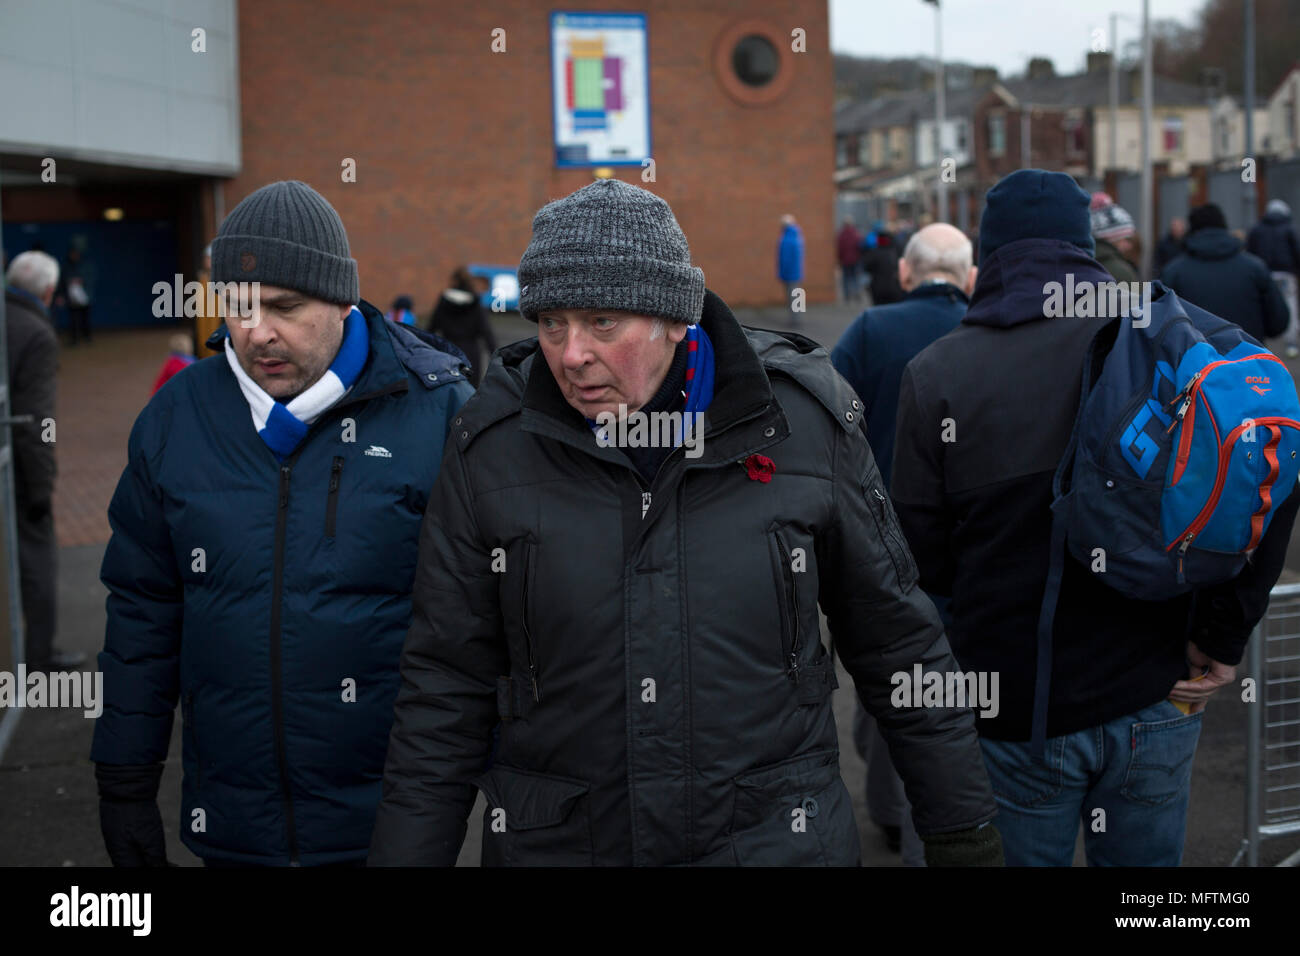 Two fans walking round the ground before Blackburn Rovers played Shrewsbury Town in a Sky Bet League One fixture at Ewood Park. Both team were in the top three in the division at the start of the game. Blackburn won the match by 3 goals to 1, watched by a crowd of 13,579. - Stock Image